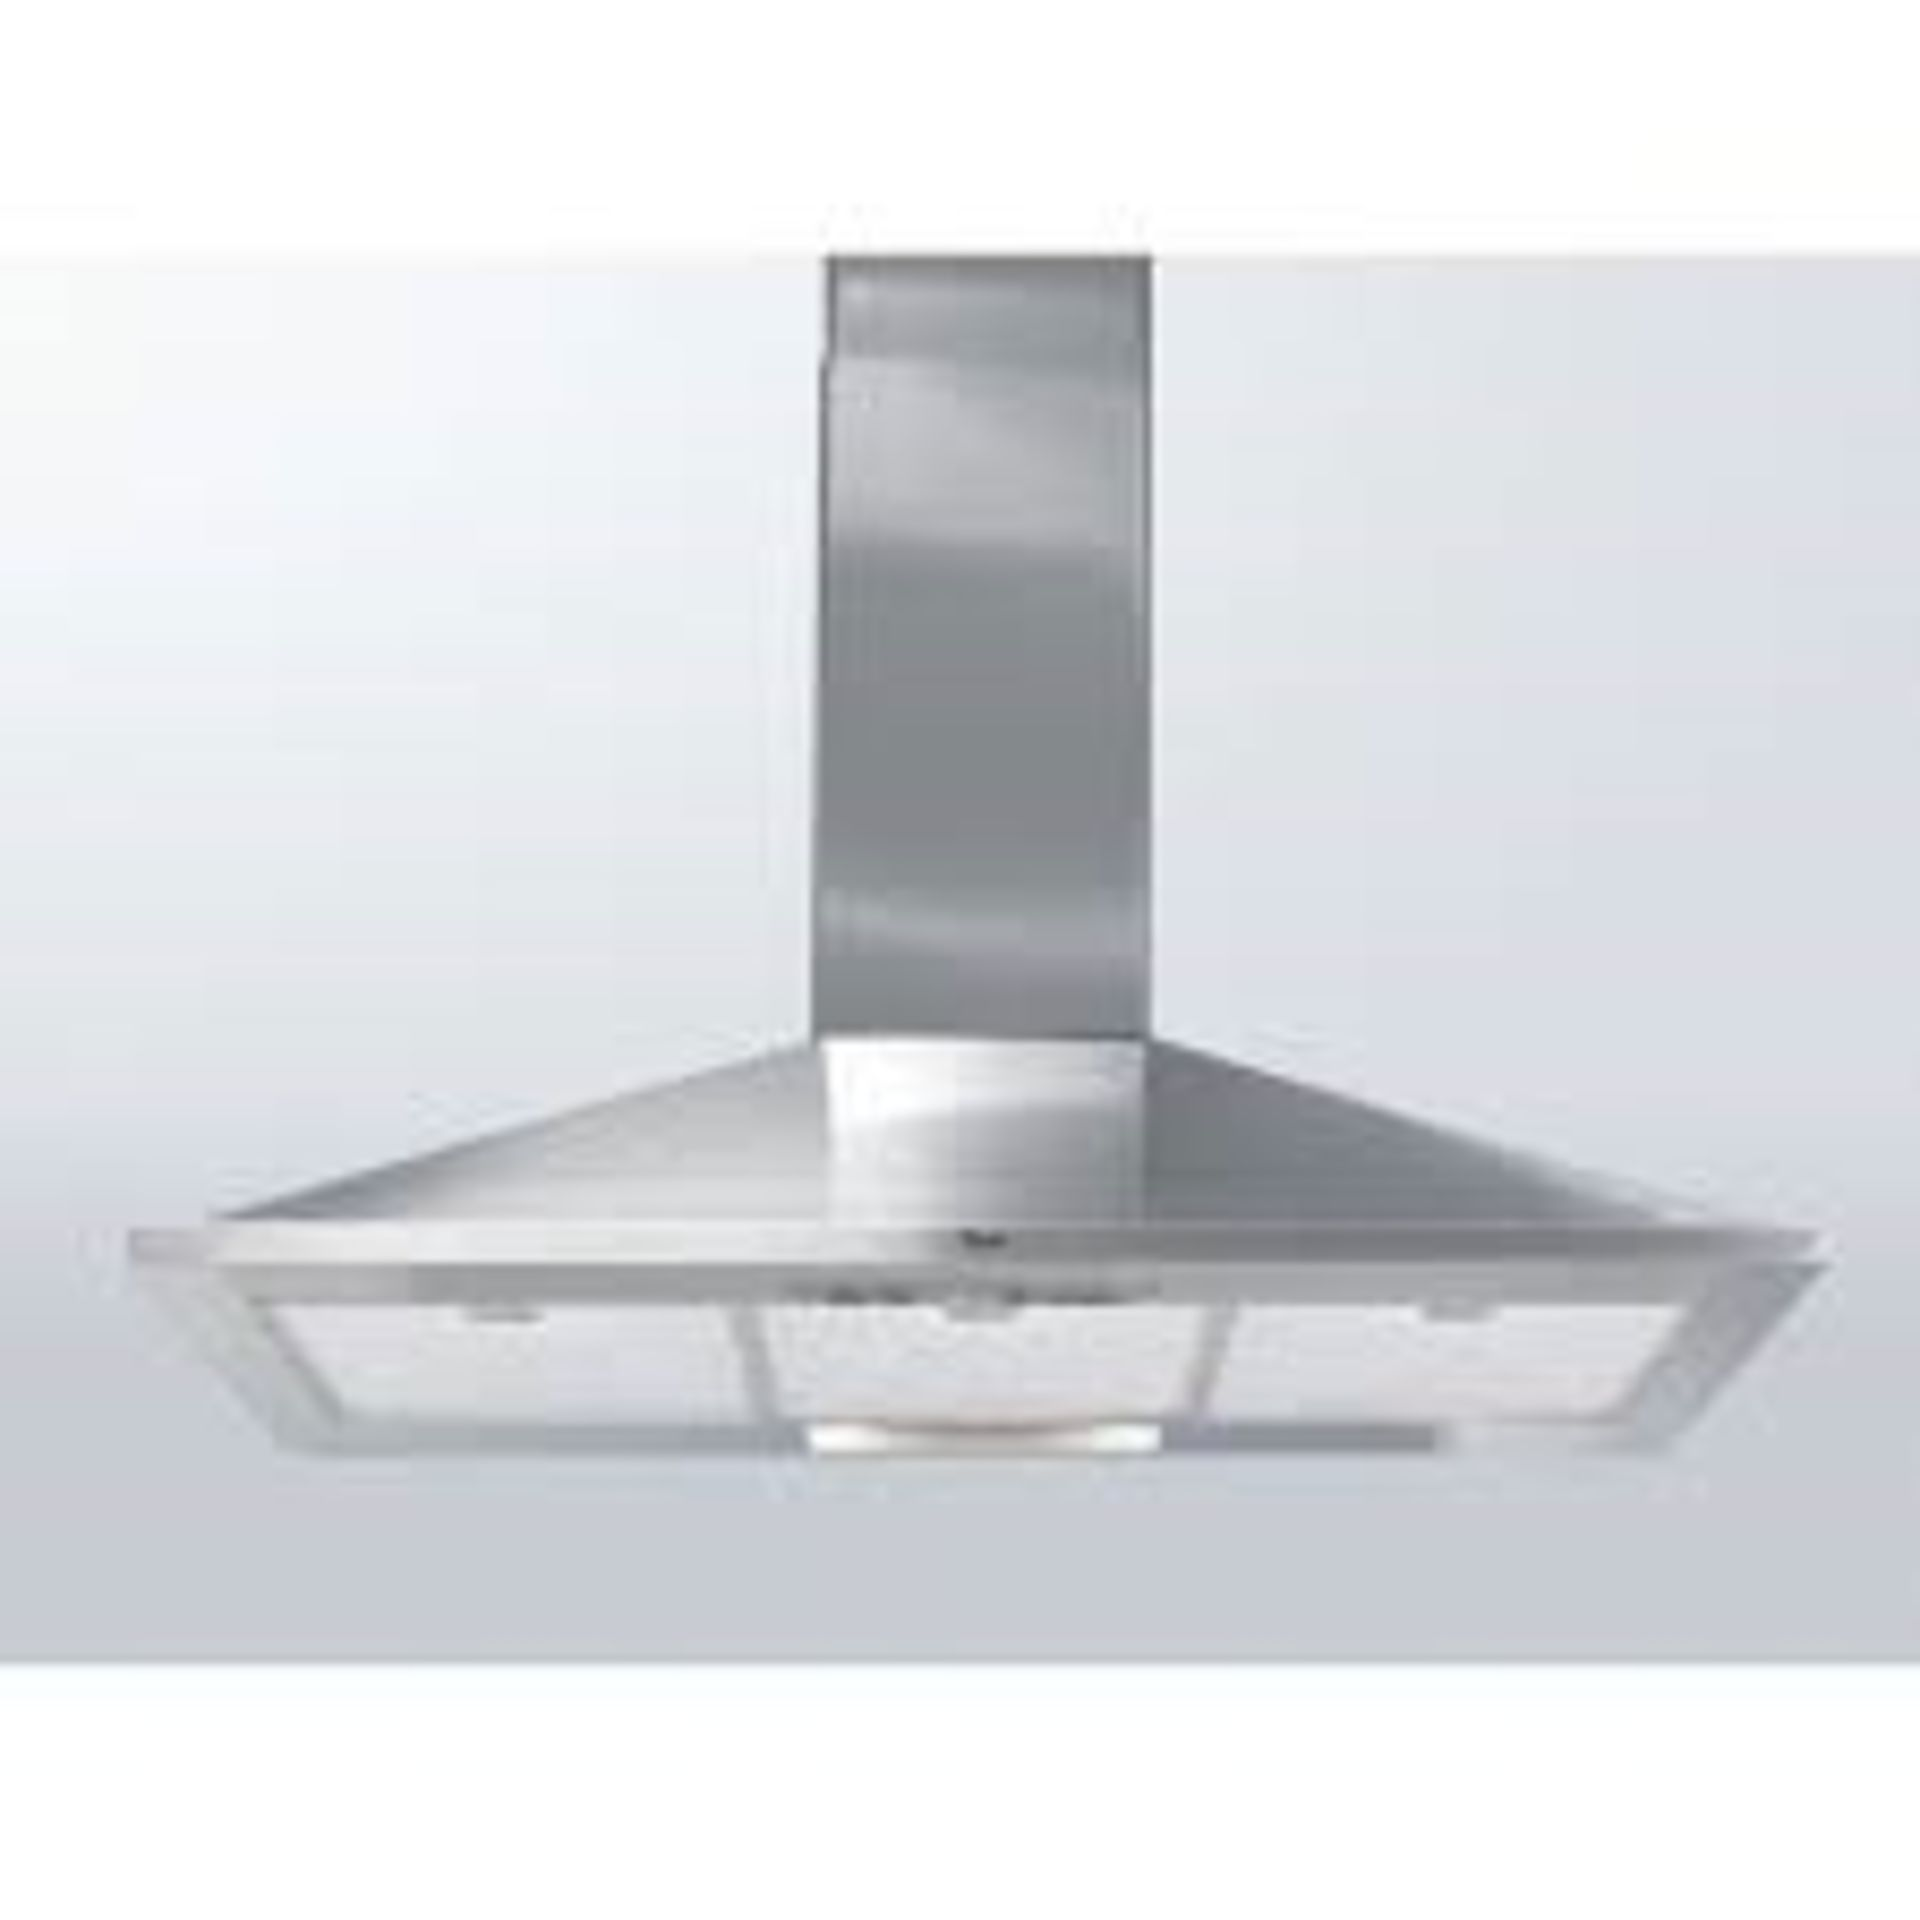 Lot 4 - 1 GRADE B BOXED AND UNTESTED WHIRLPOOL AKR590UK CHIMNEY COOKER HOOD IN SILVER / RRP £450.00 (VIEWING